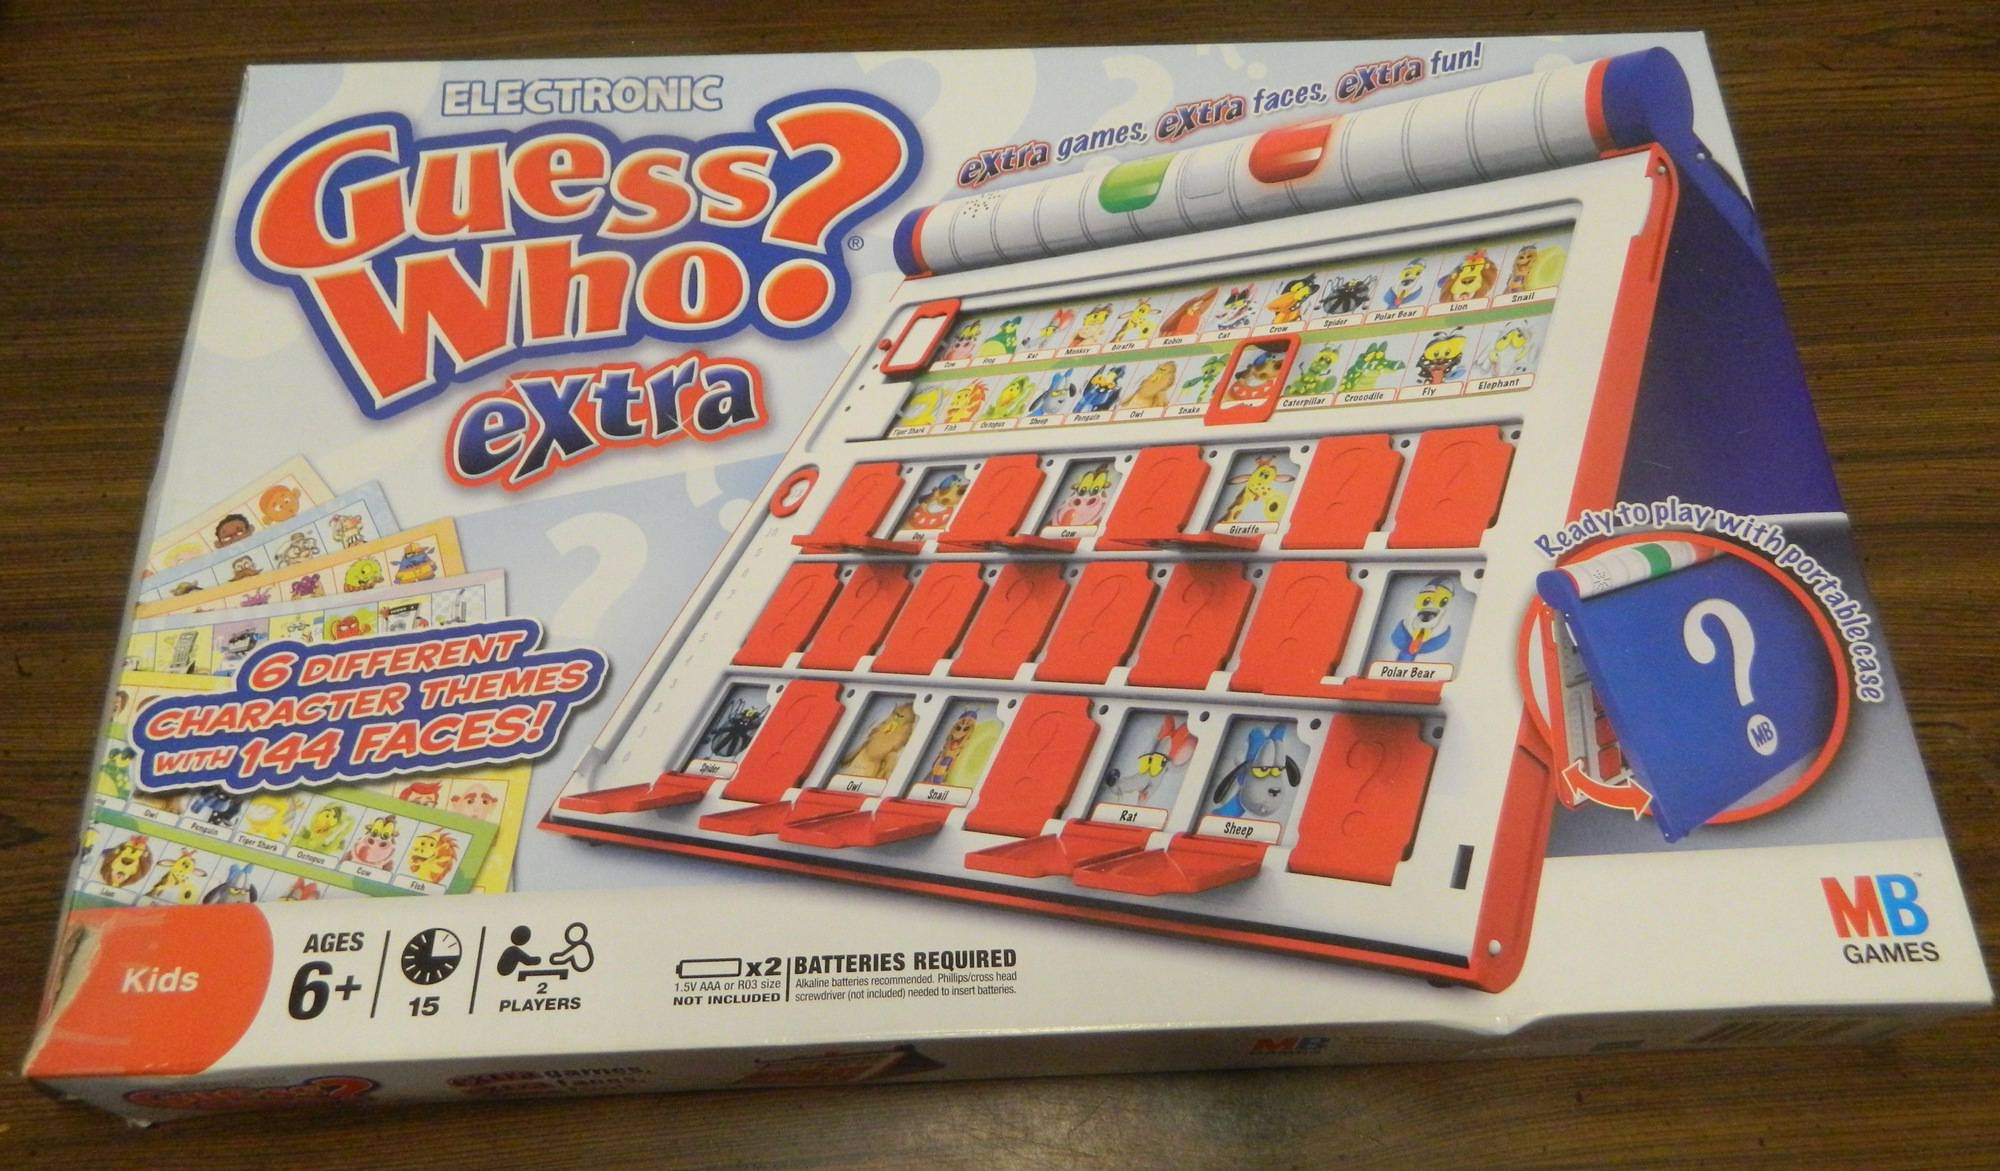 Box for Electronic Guess Who? Extra